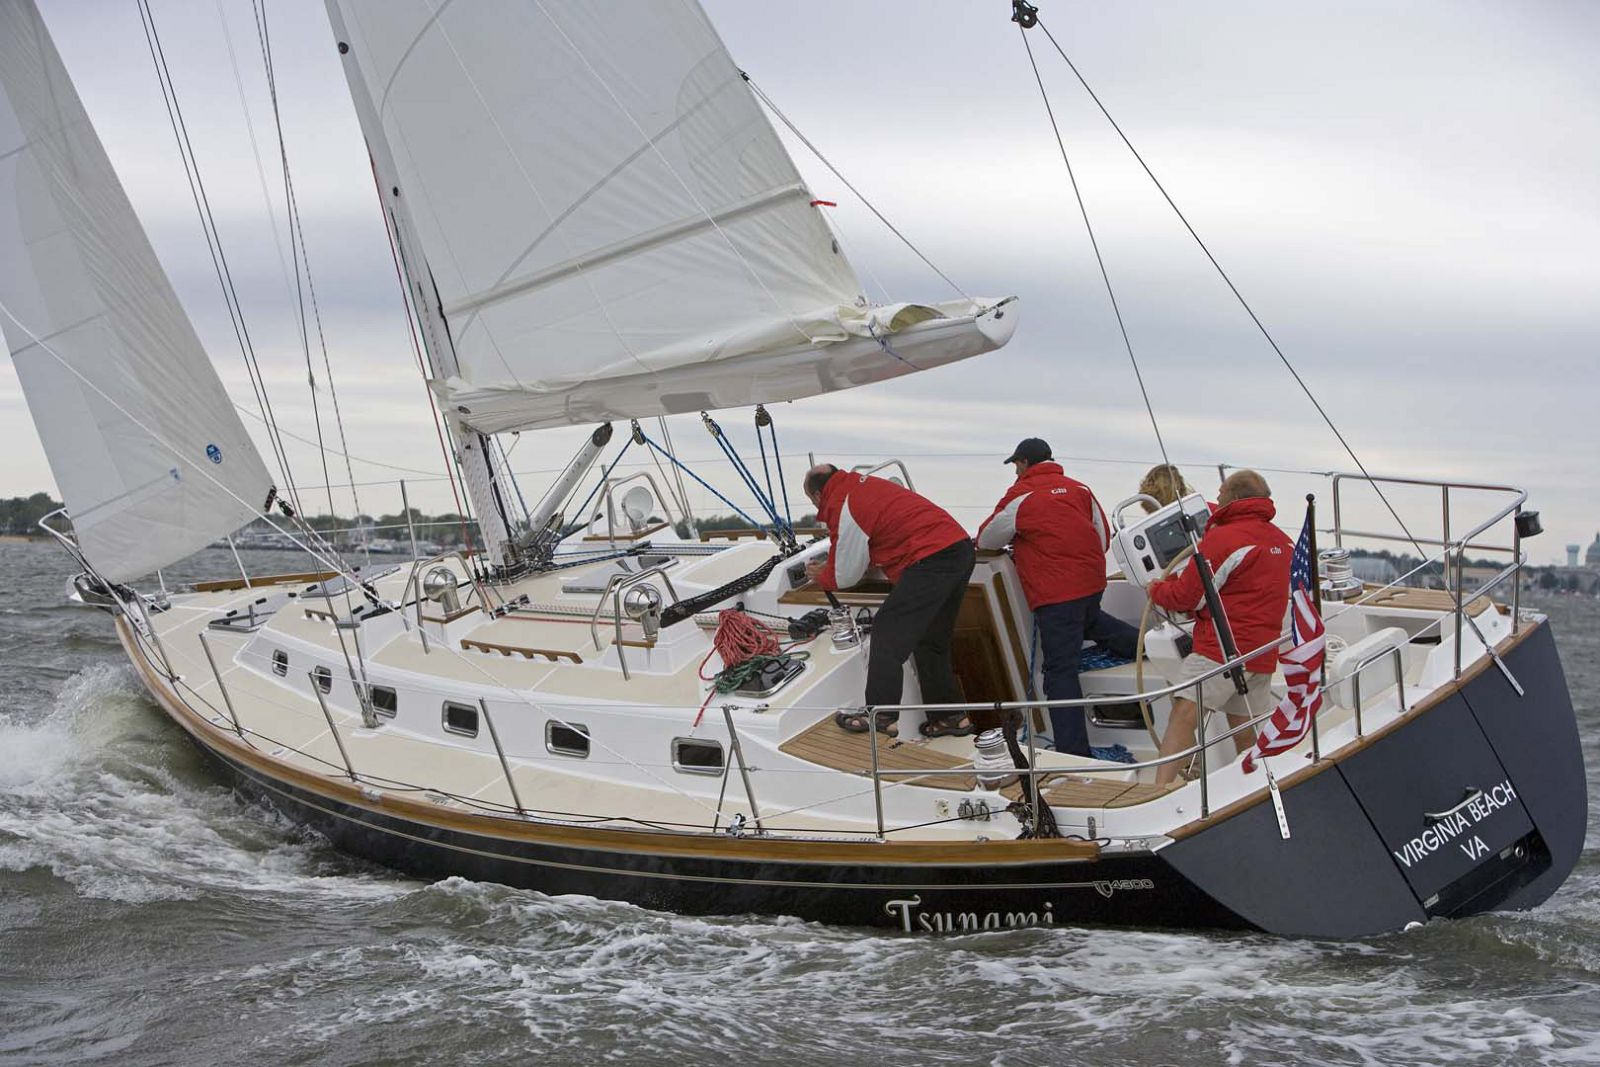 Tartan-Yachts-4300-Sailboat-sailing-team